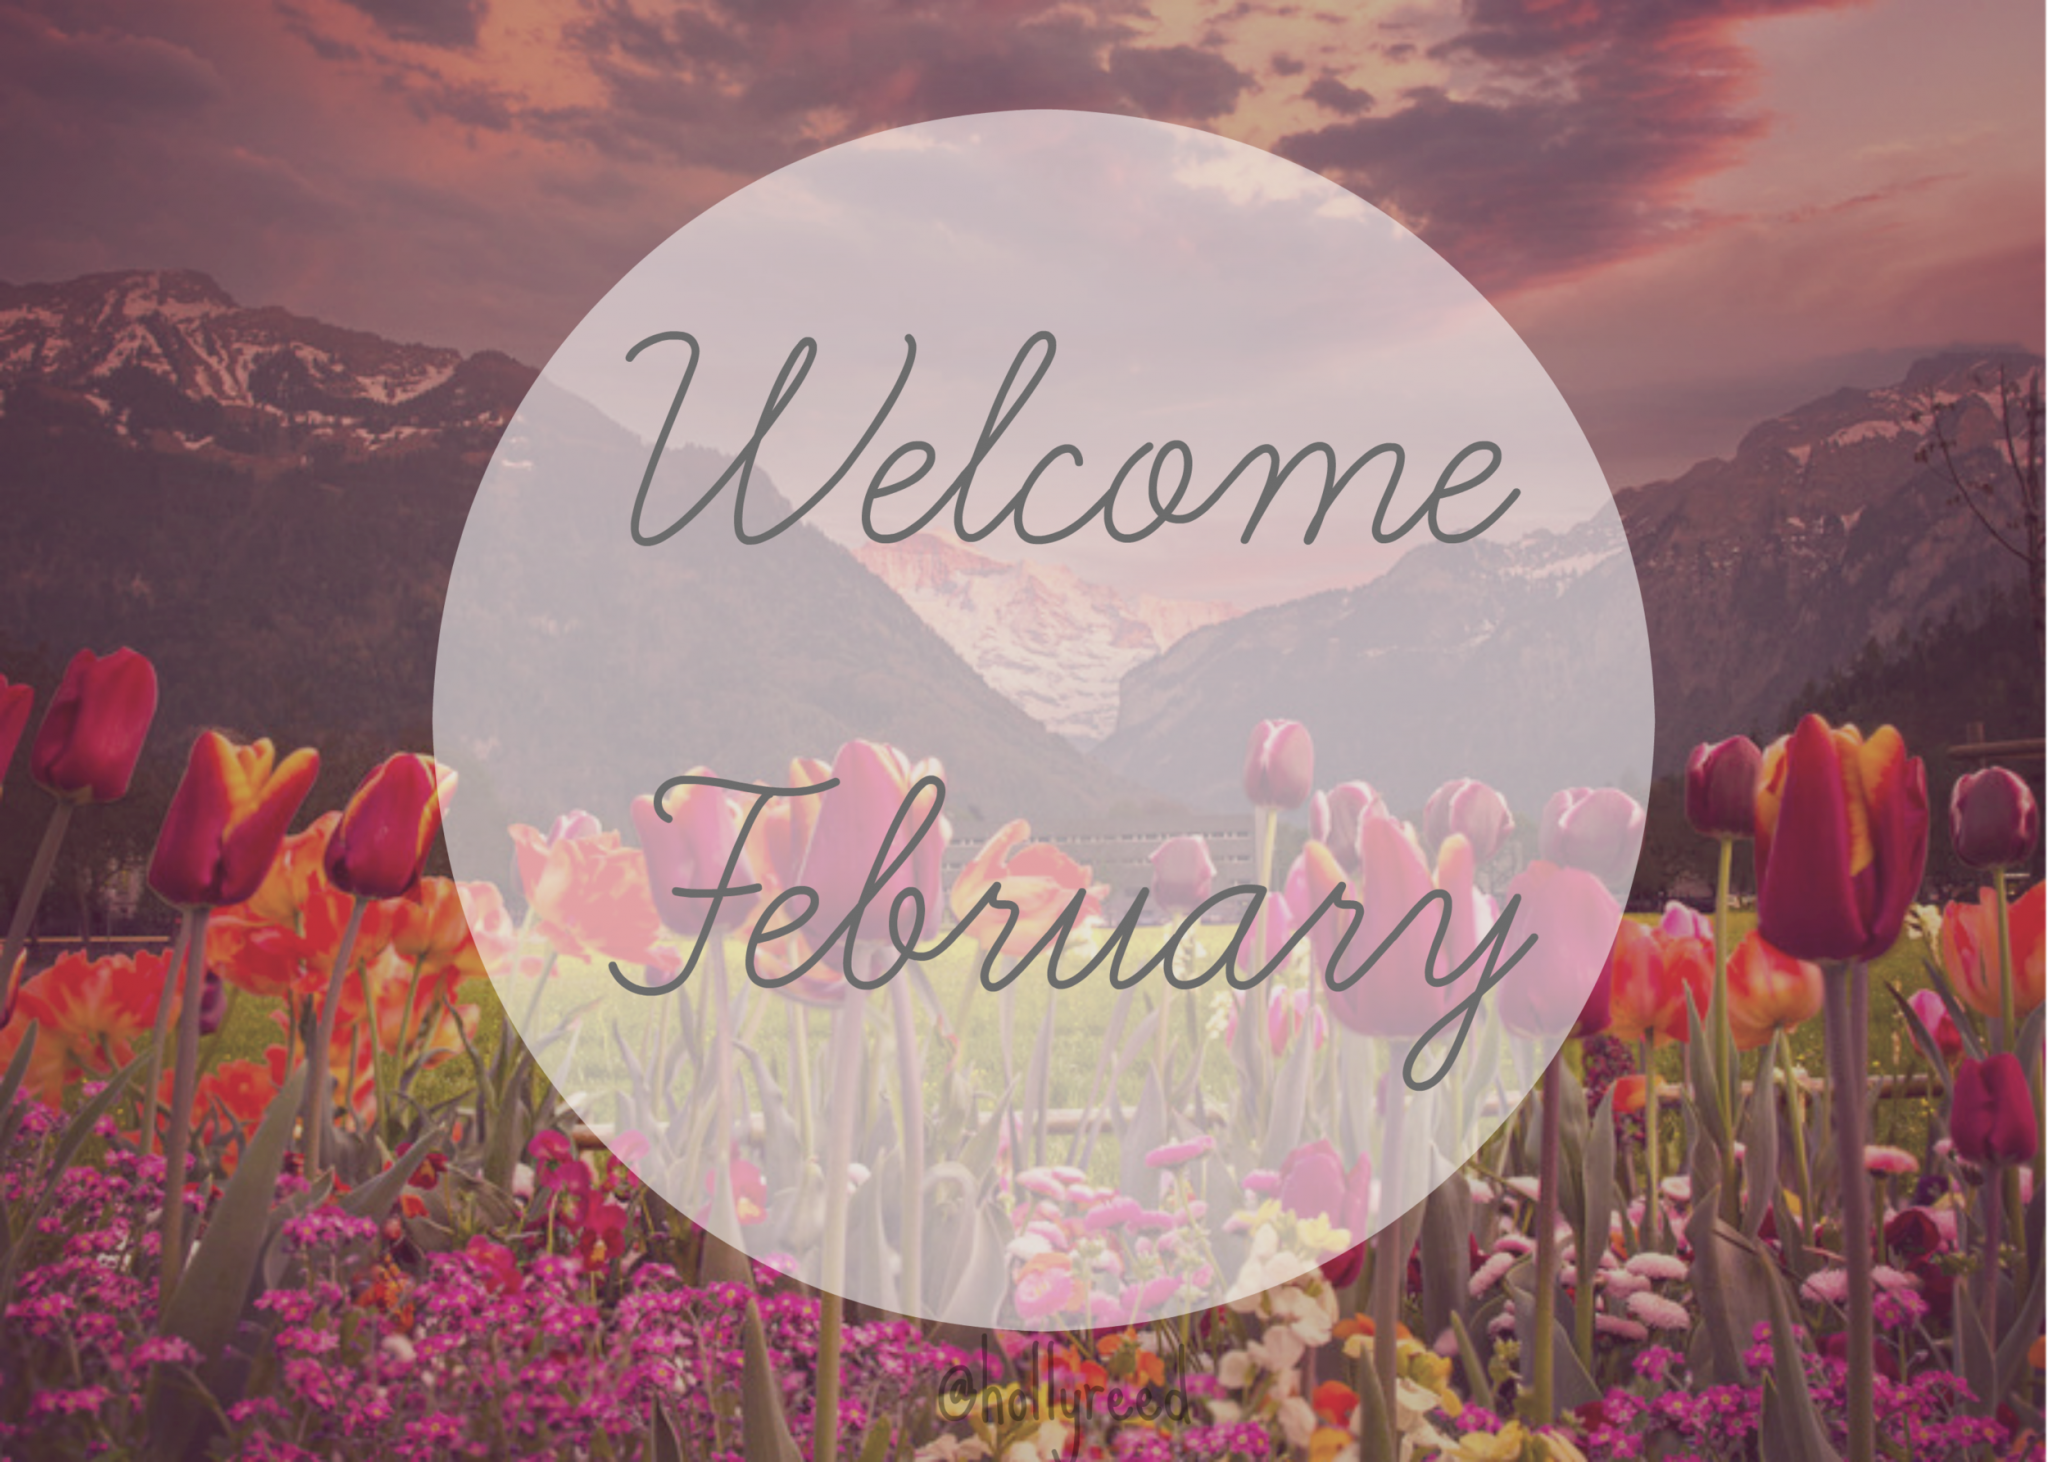 Welcome February Wallpapers February Februaryimages Februaryquotes Hello Welcome February Images Welcome February February Wallpaper